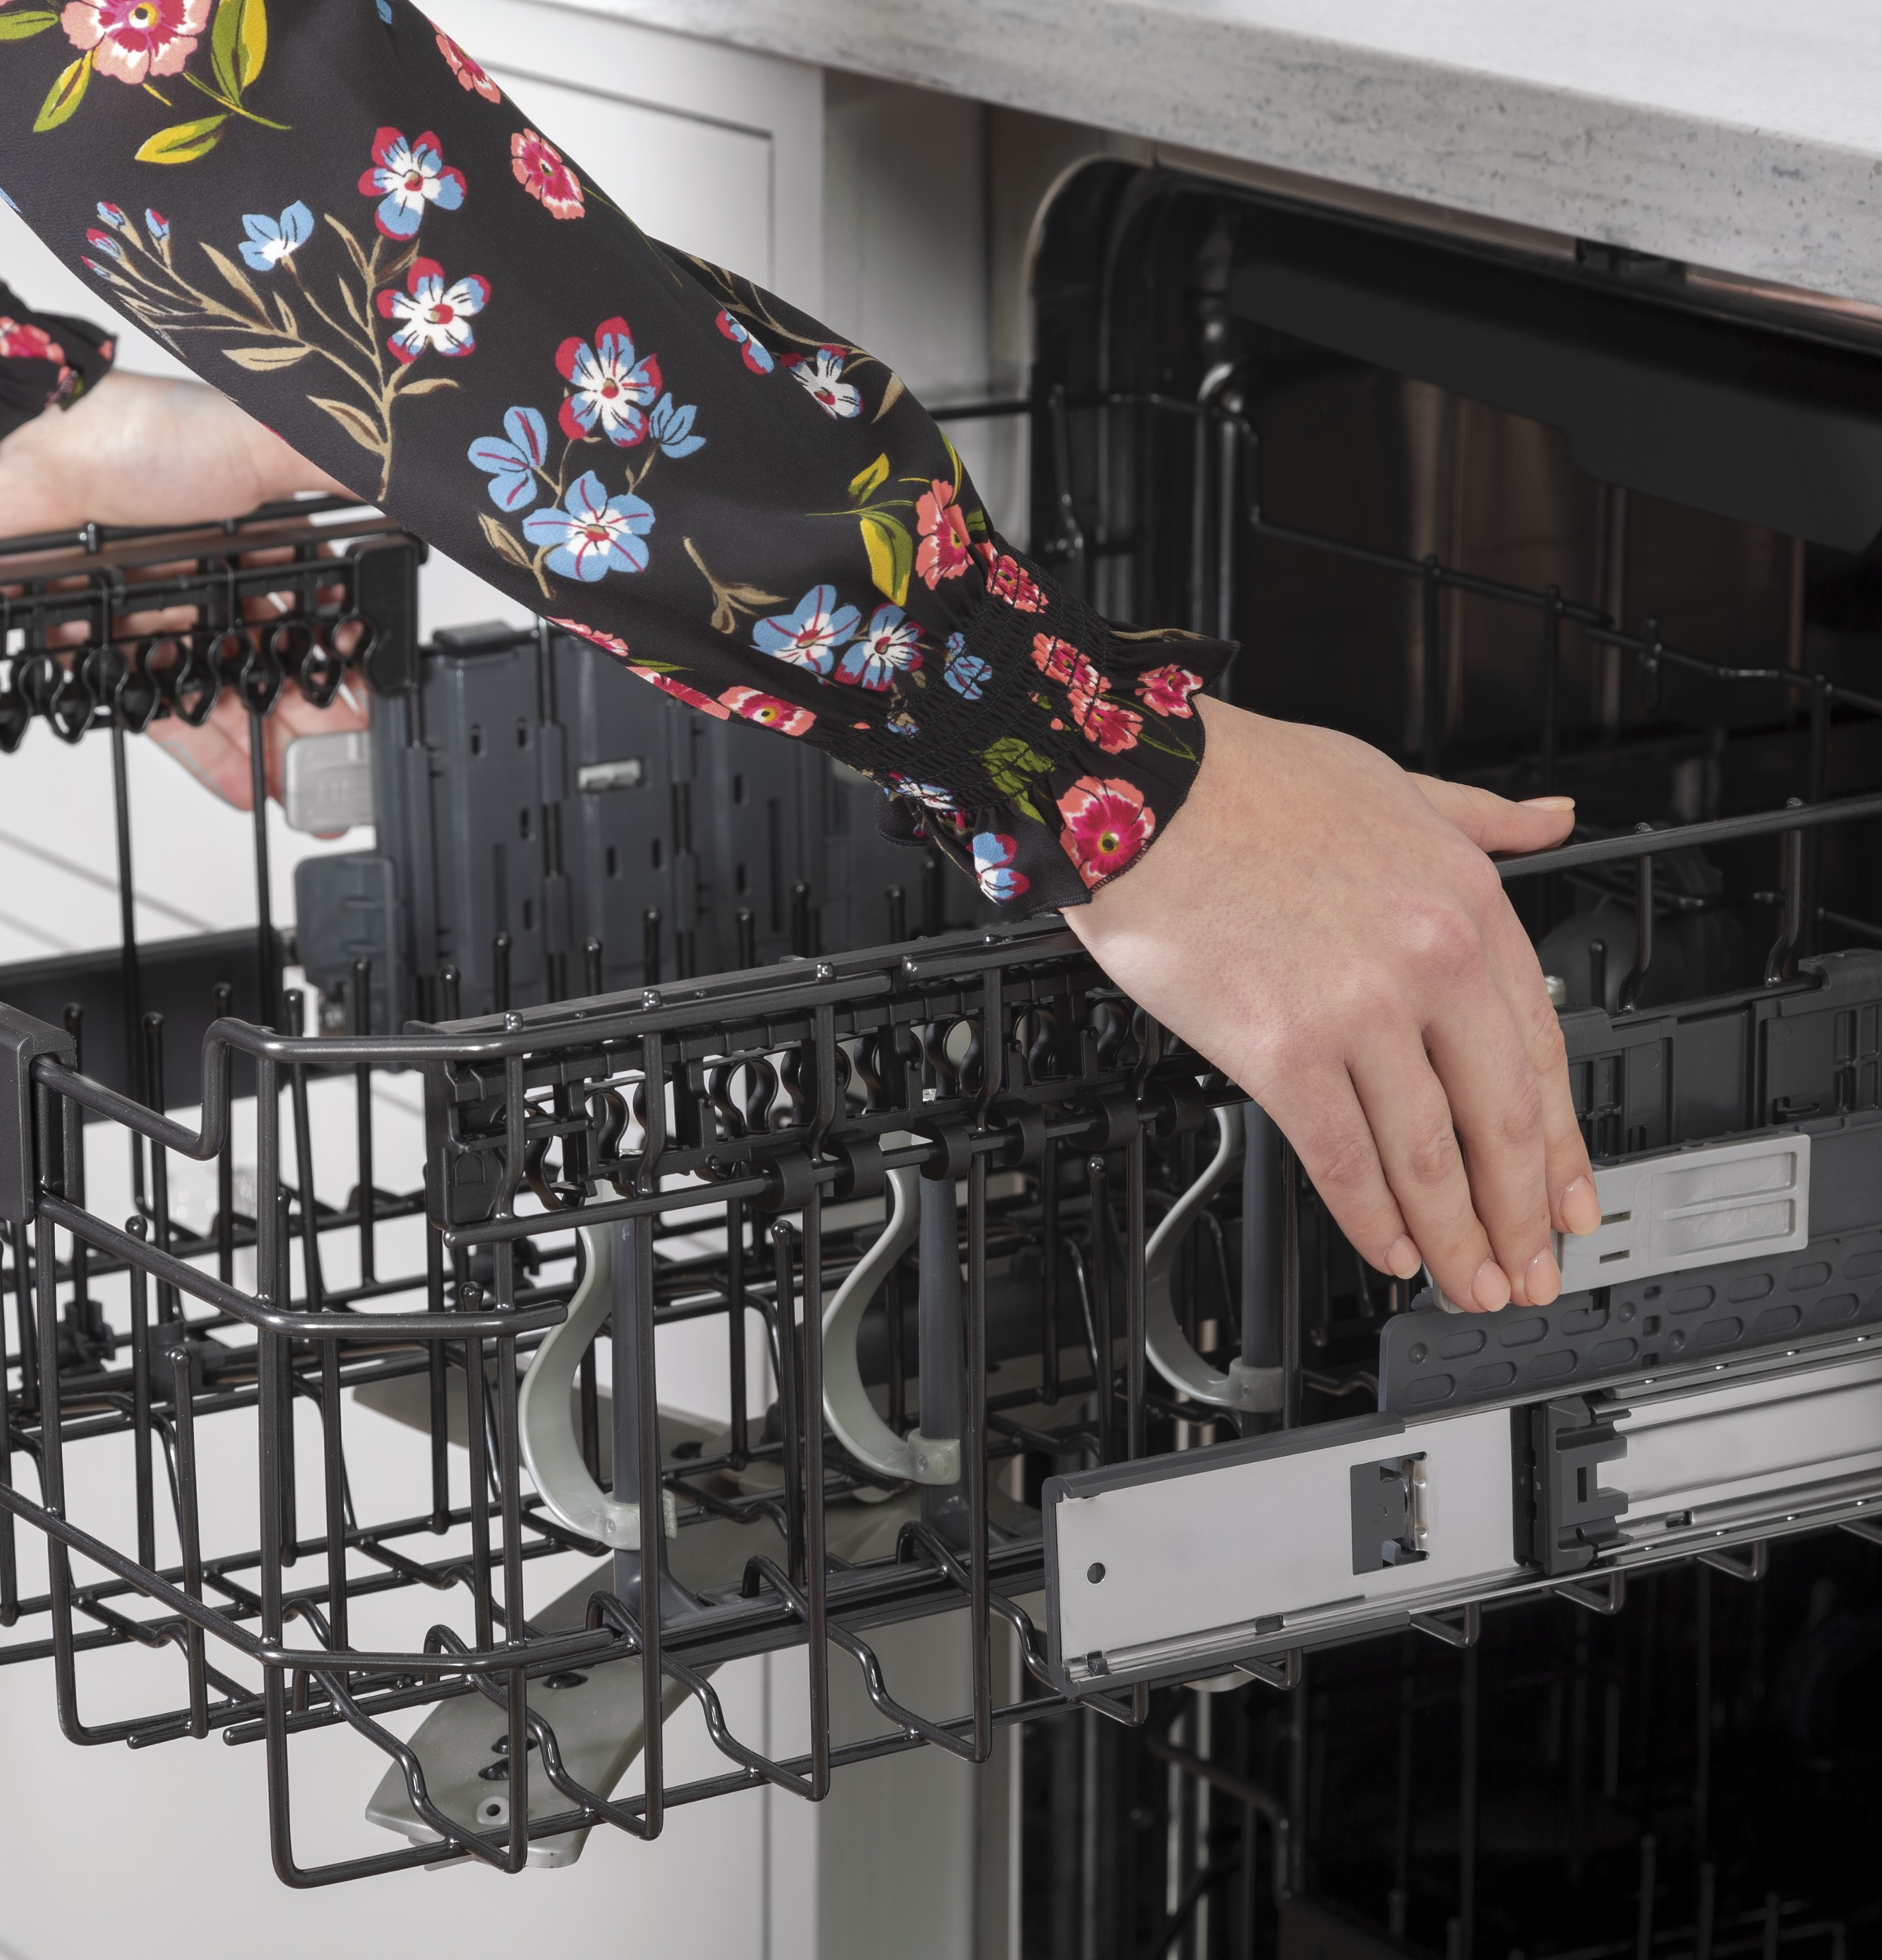 Model: CDT805M5NS5 | Cafe Café™ Stainless Steel Interior Dishwasher with Sanitize and Ultra Wash & Dry in Platinum Glass